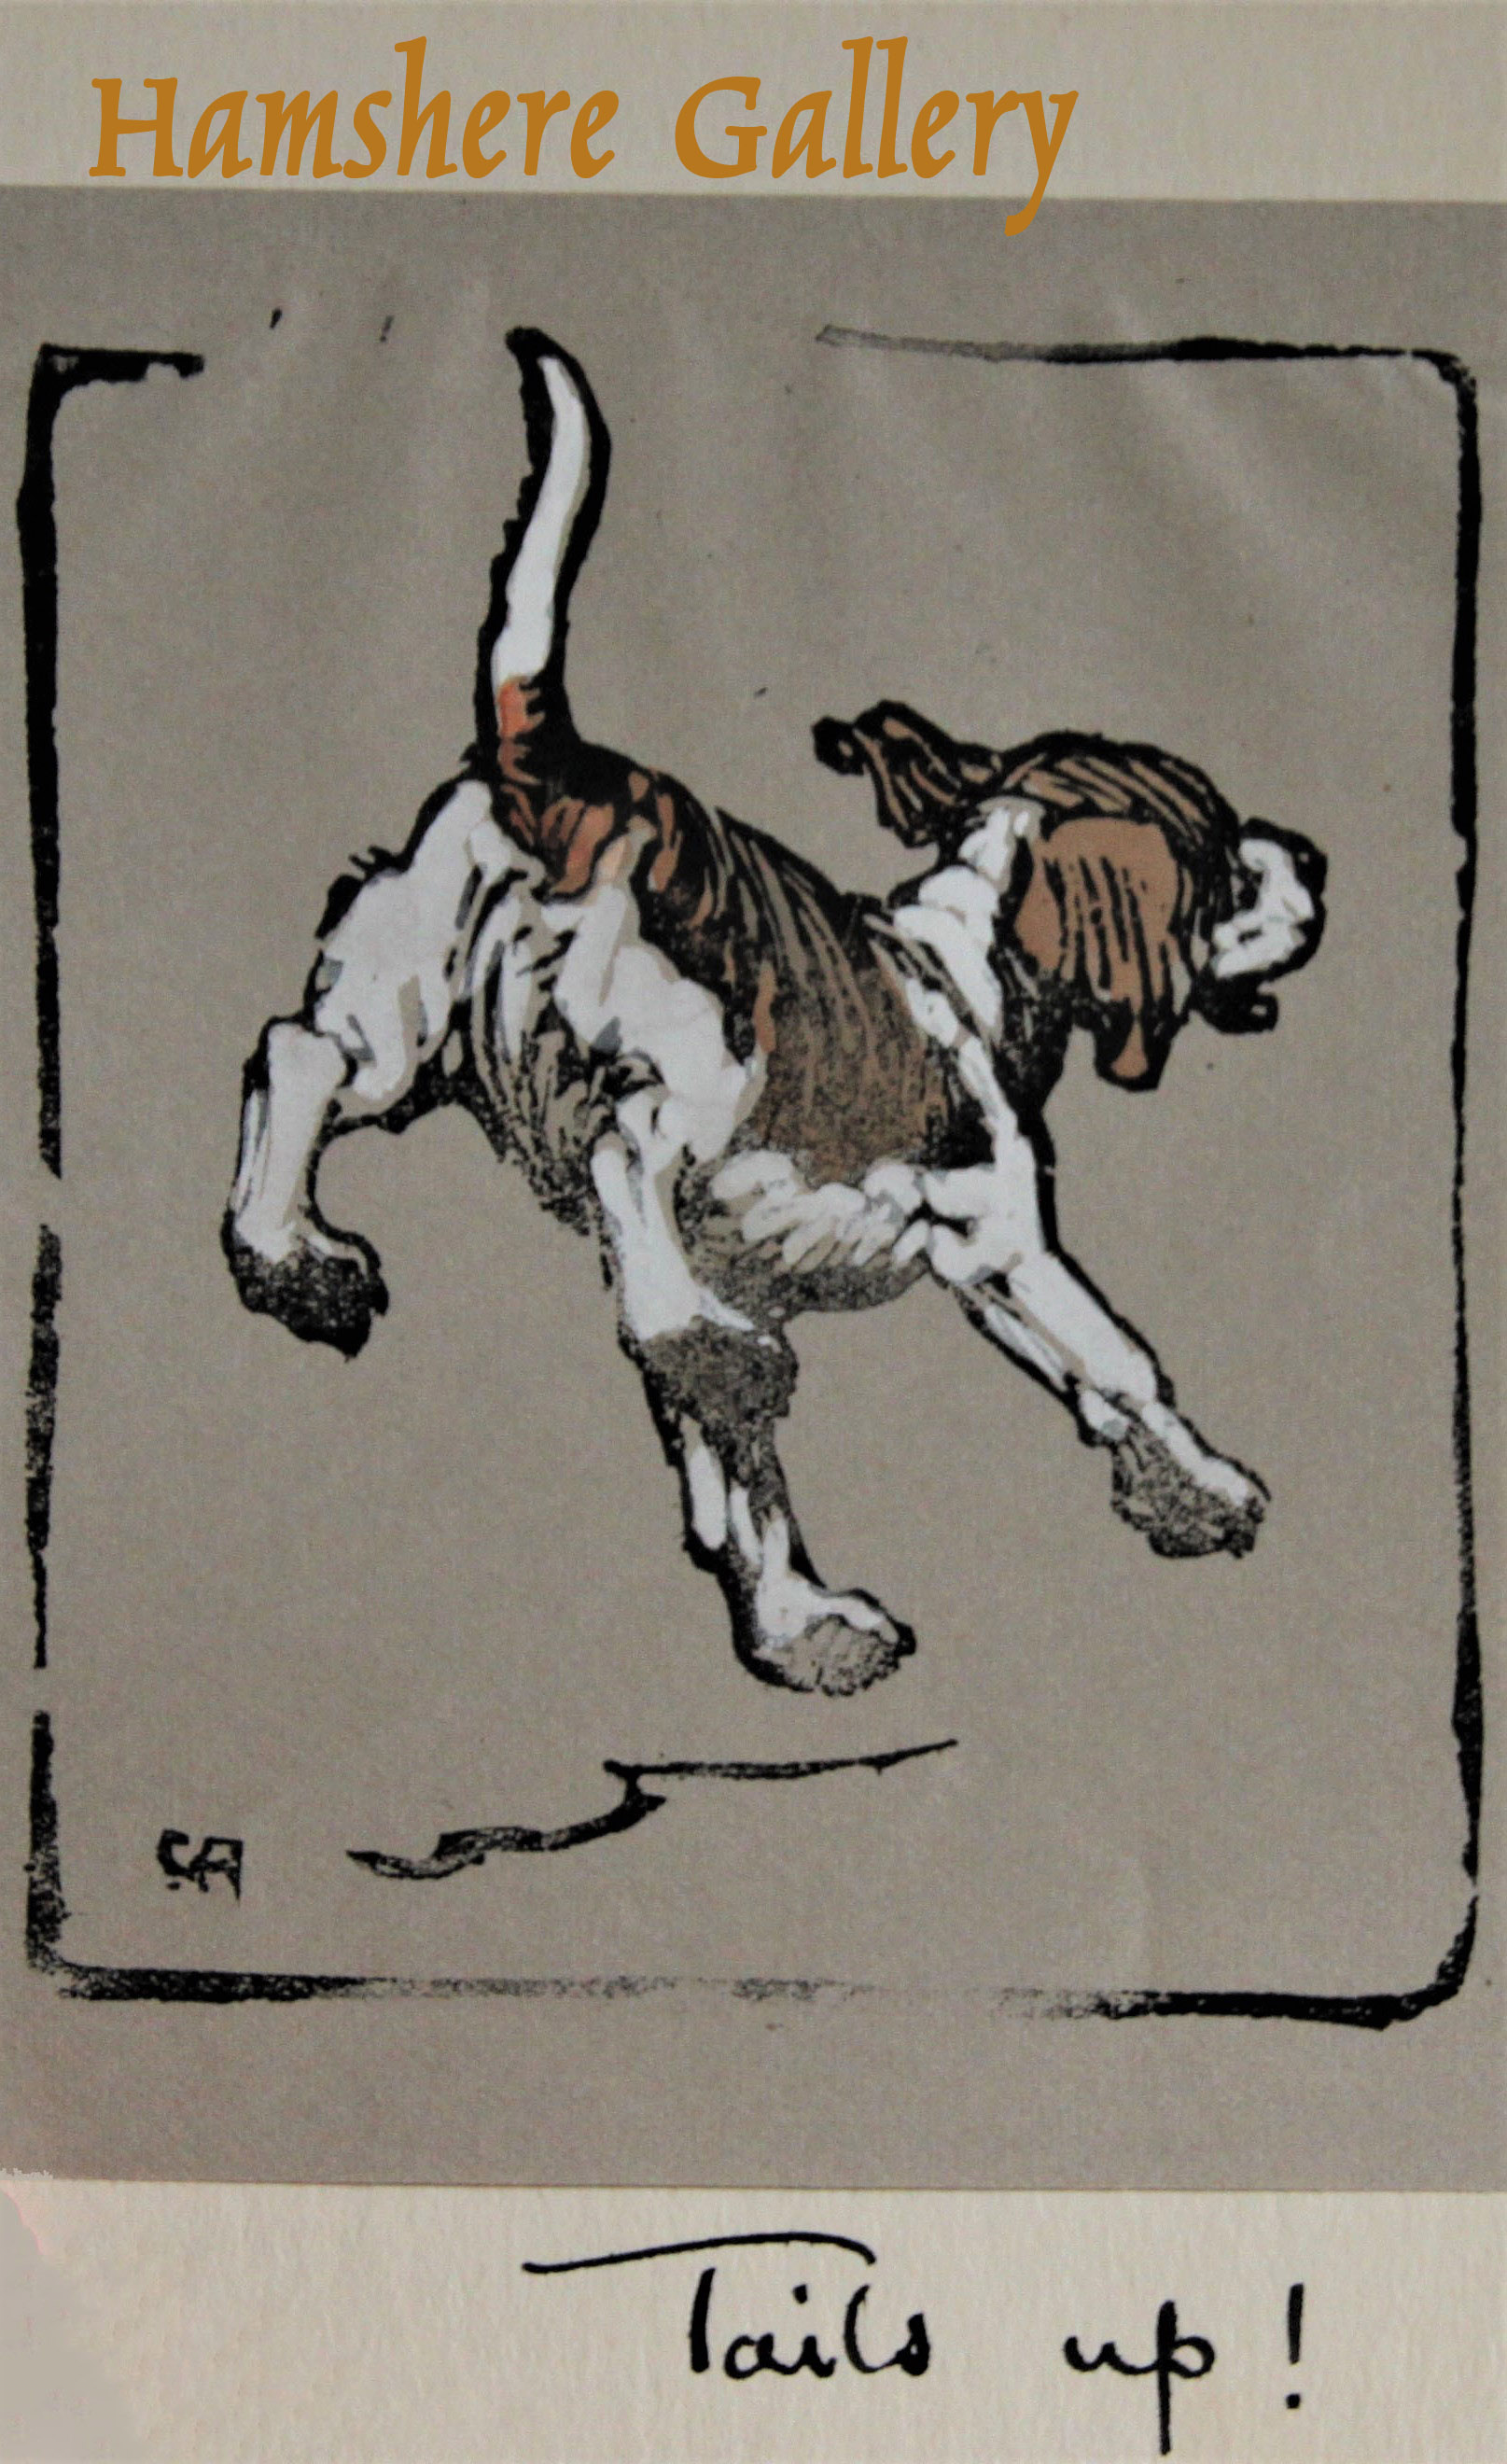 Click to see full size: A woodcut of a running Beagle by Christopher Gifford Ambler (English, 1886-1965)- A woodcut of a running Beagle by Christopher Gifford Ambler (English, 1886-1965)